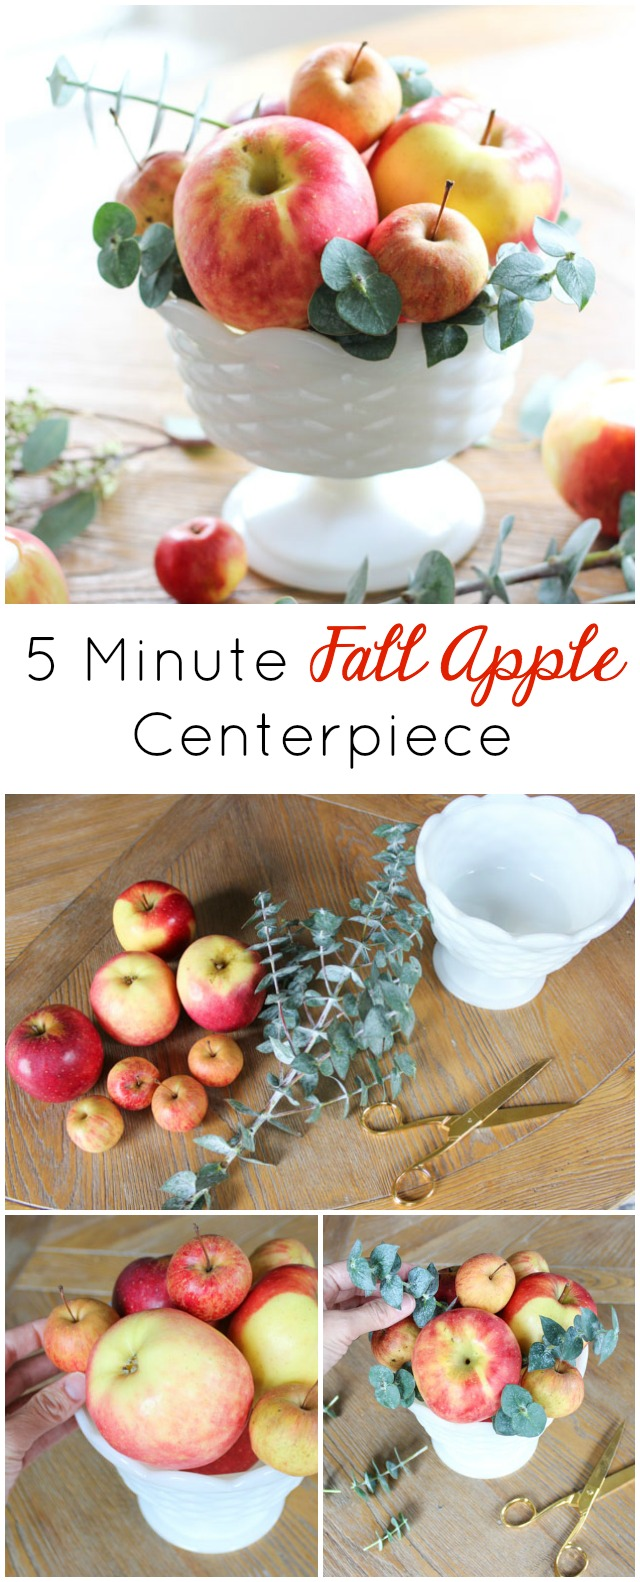 The easiest fall centerpiece idea using apples and eucalyptus!